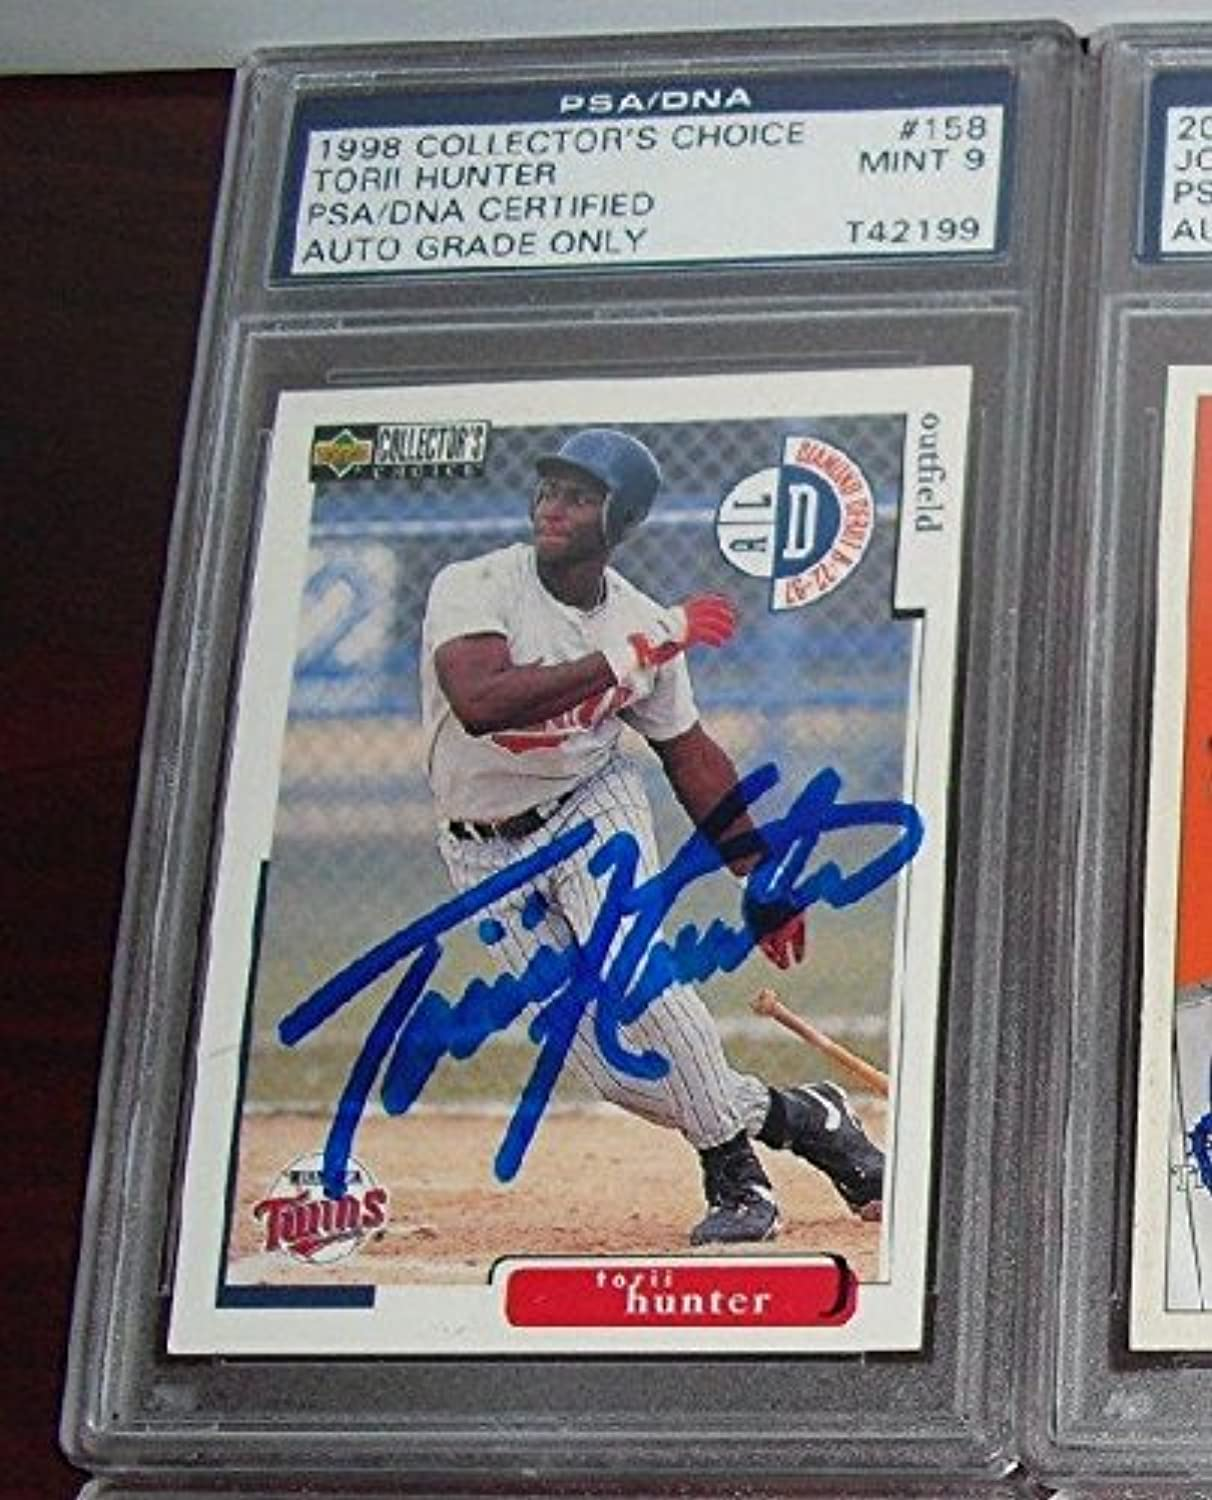 1998 Ud Collector's Choice Torii Hunter Signed Rookie Auto  158 9 Mint Twins  PSA DNA Certified  Baseball Slabbed Autographed Rookie Cards